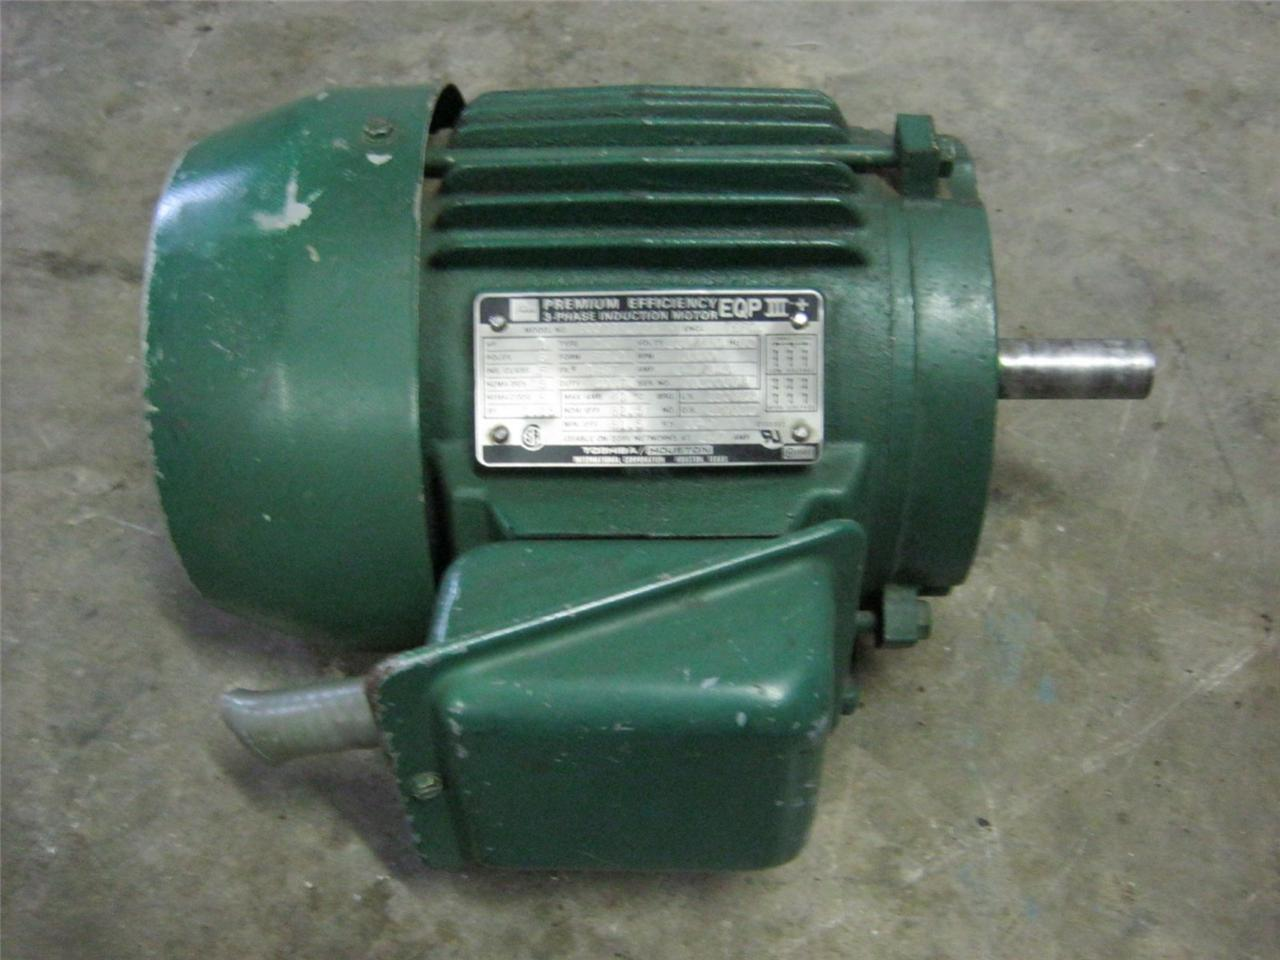 Toshiba peremium efficiency 3 phase induction motor eqp3 1 for 3 phase 3hp motor